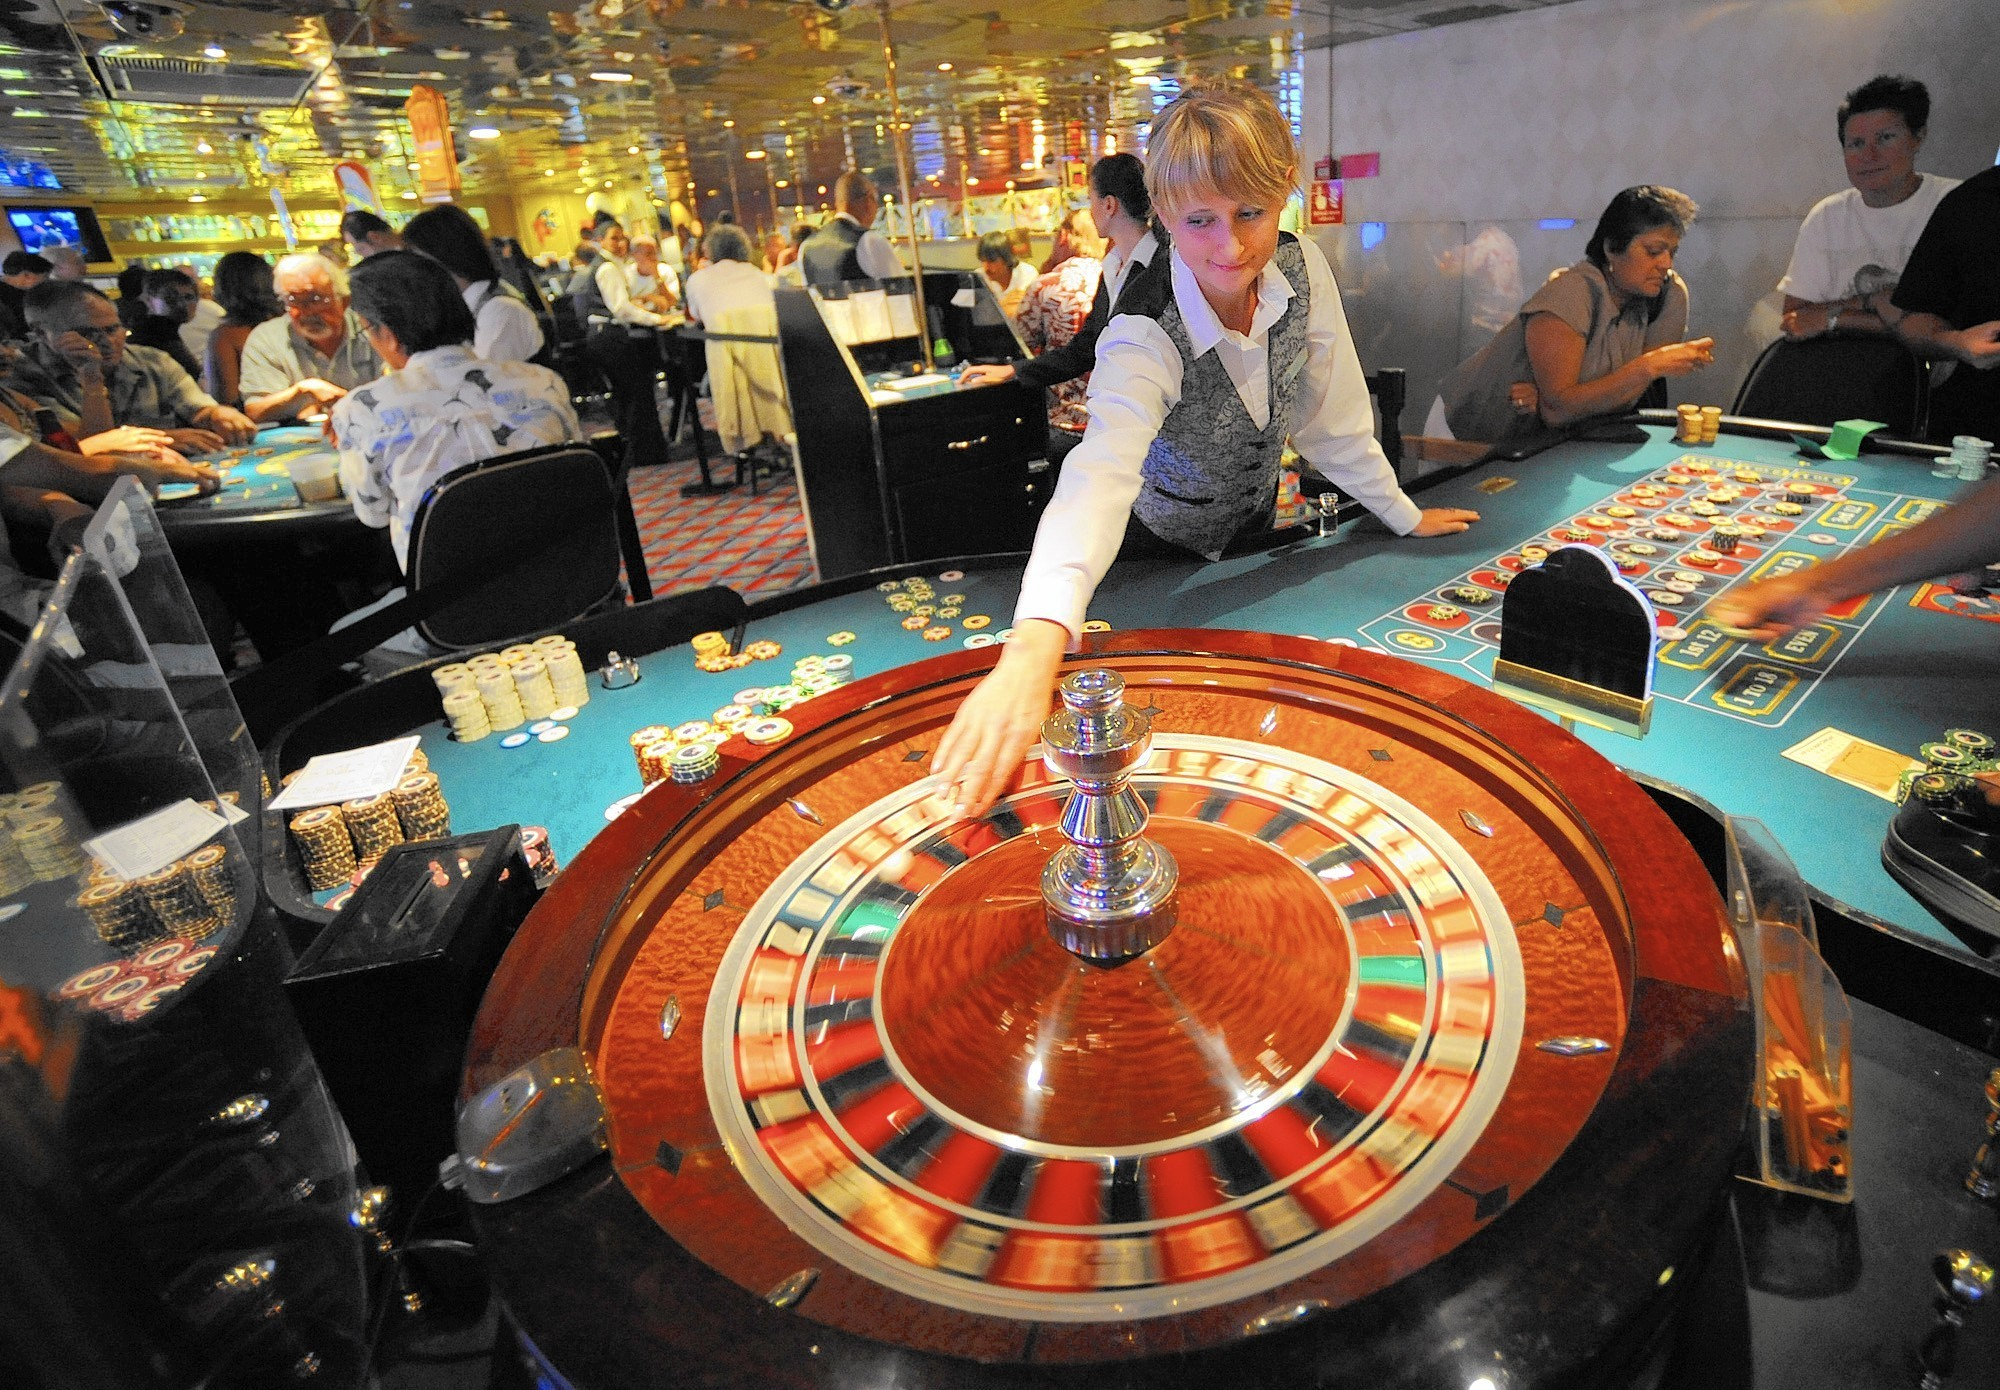 South florida casinos with craps final fantasy 14 high level roulette